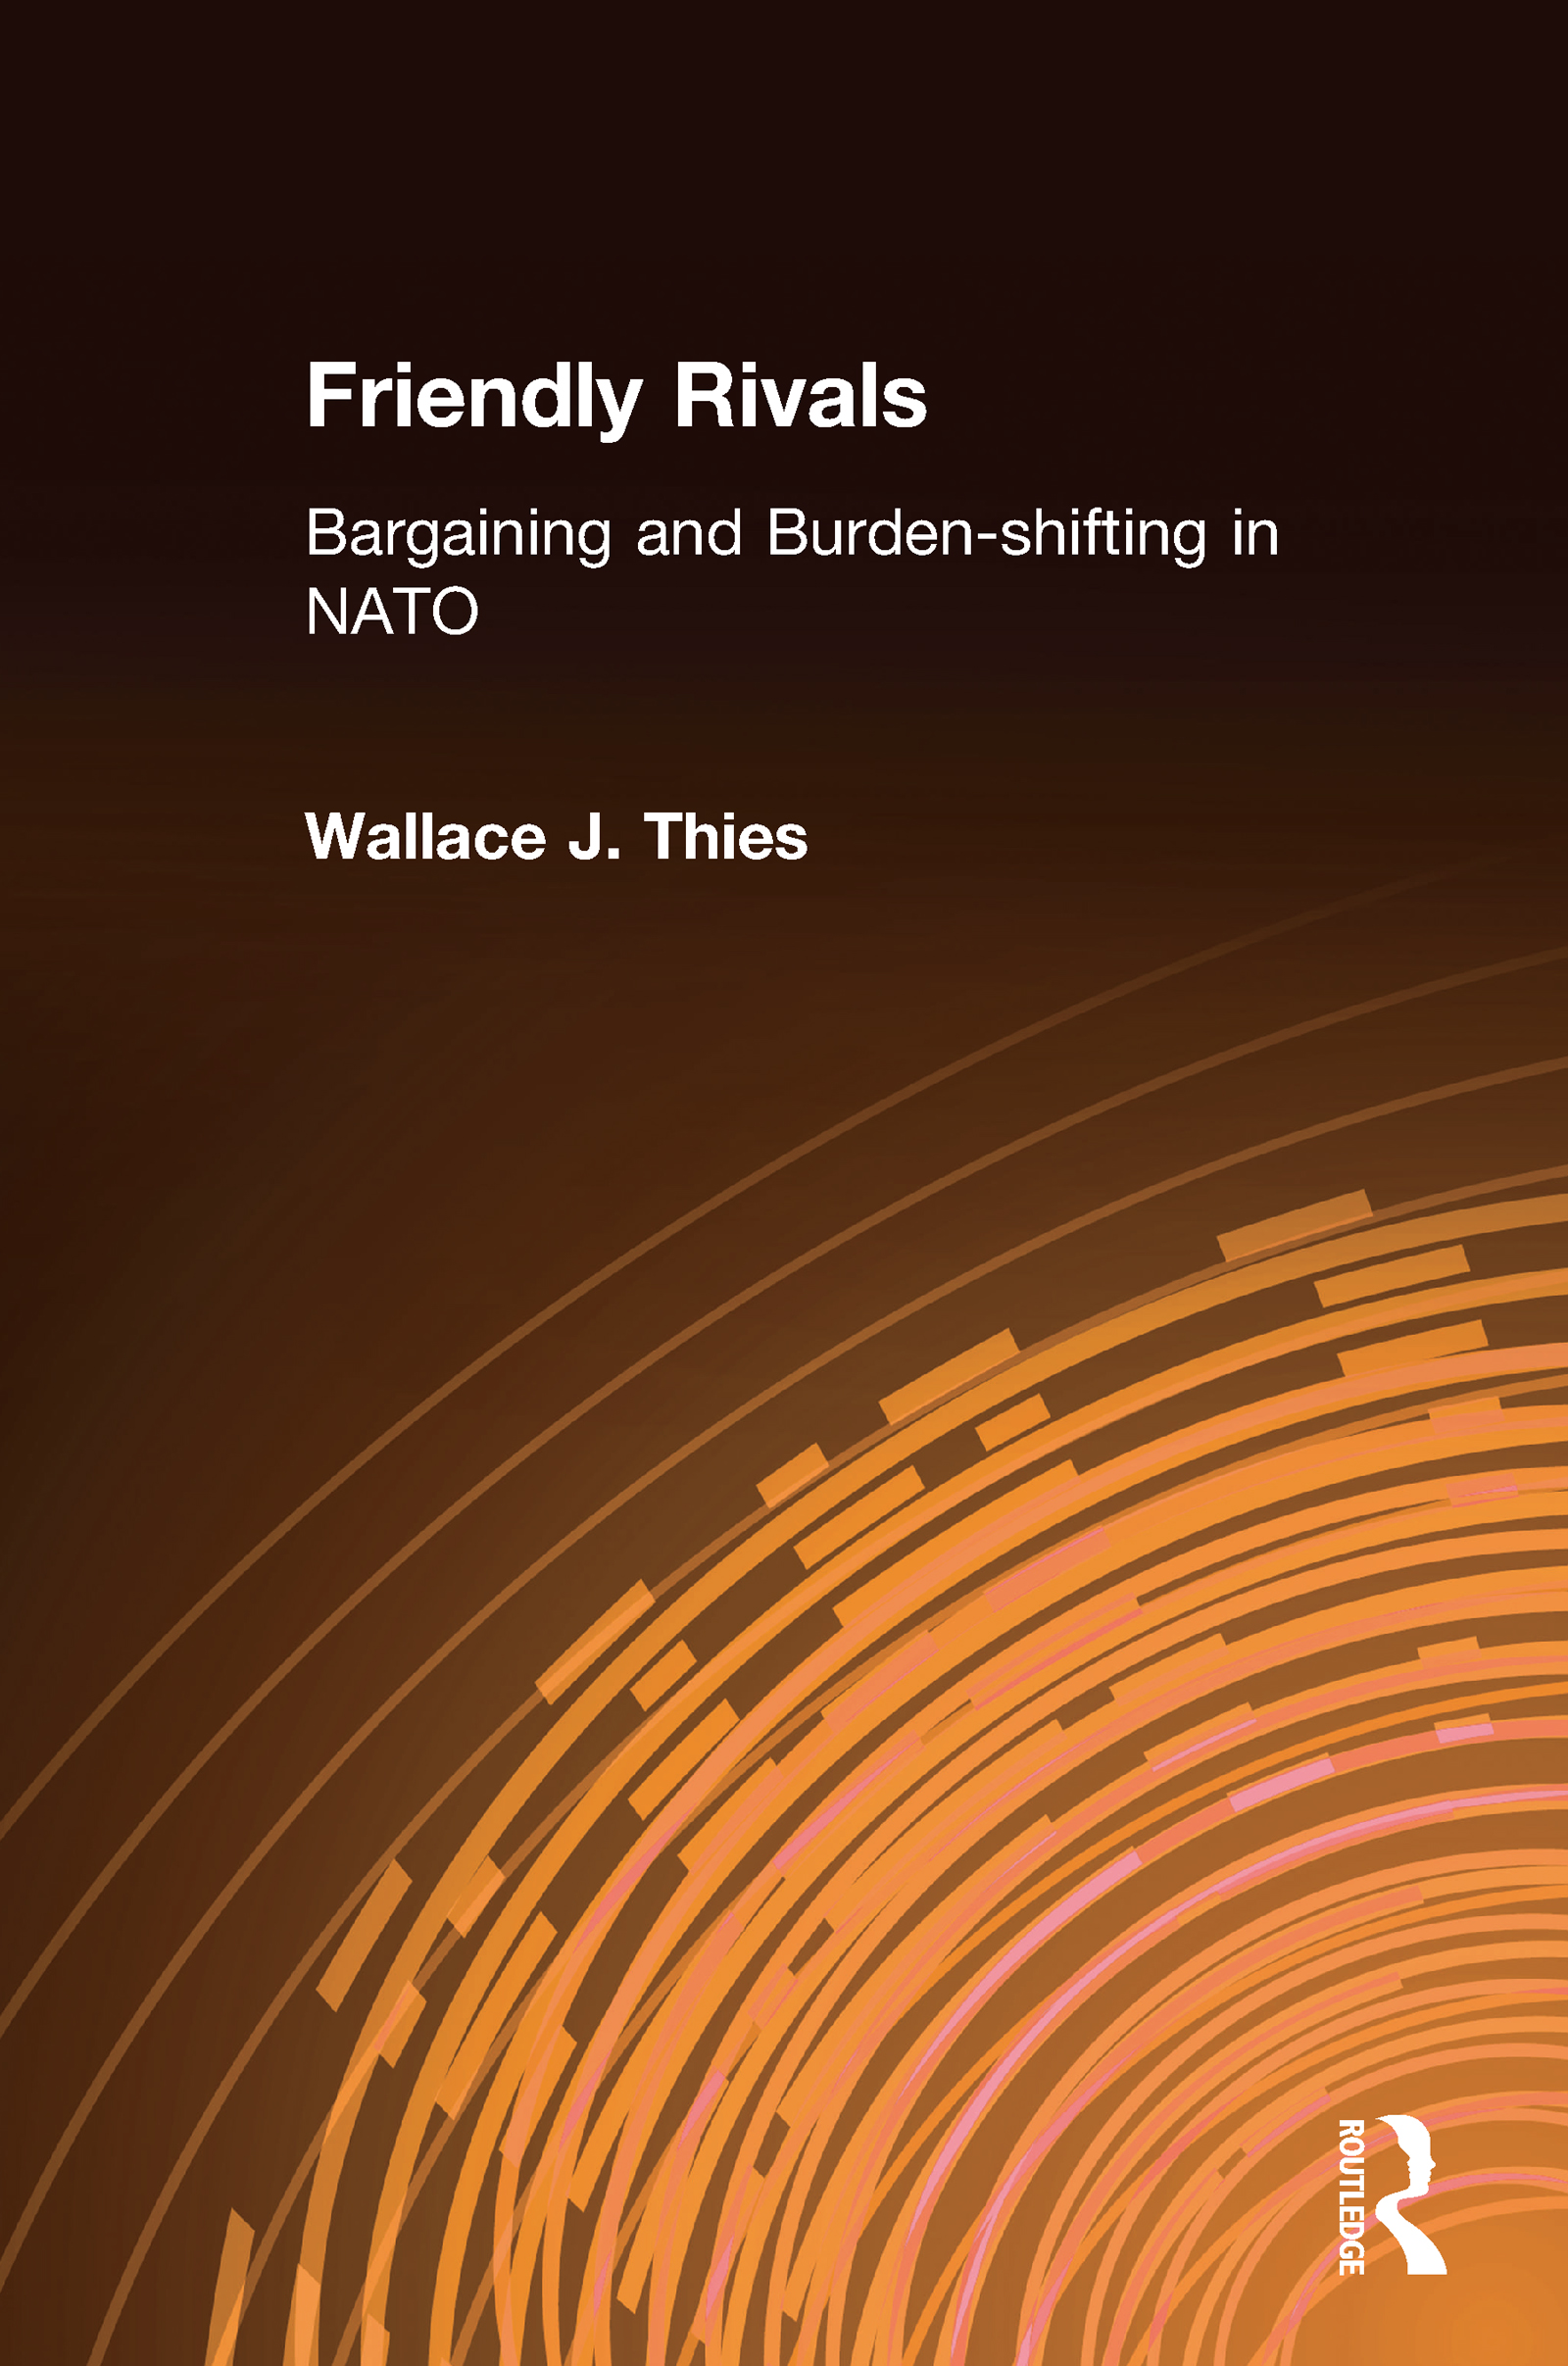 Friendly Rivals: Bargaining and Burden-shifting in NATO: Bargaining and Burden-shifting in NATO, 1st Edition (Hardback) book cover